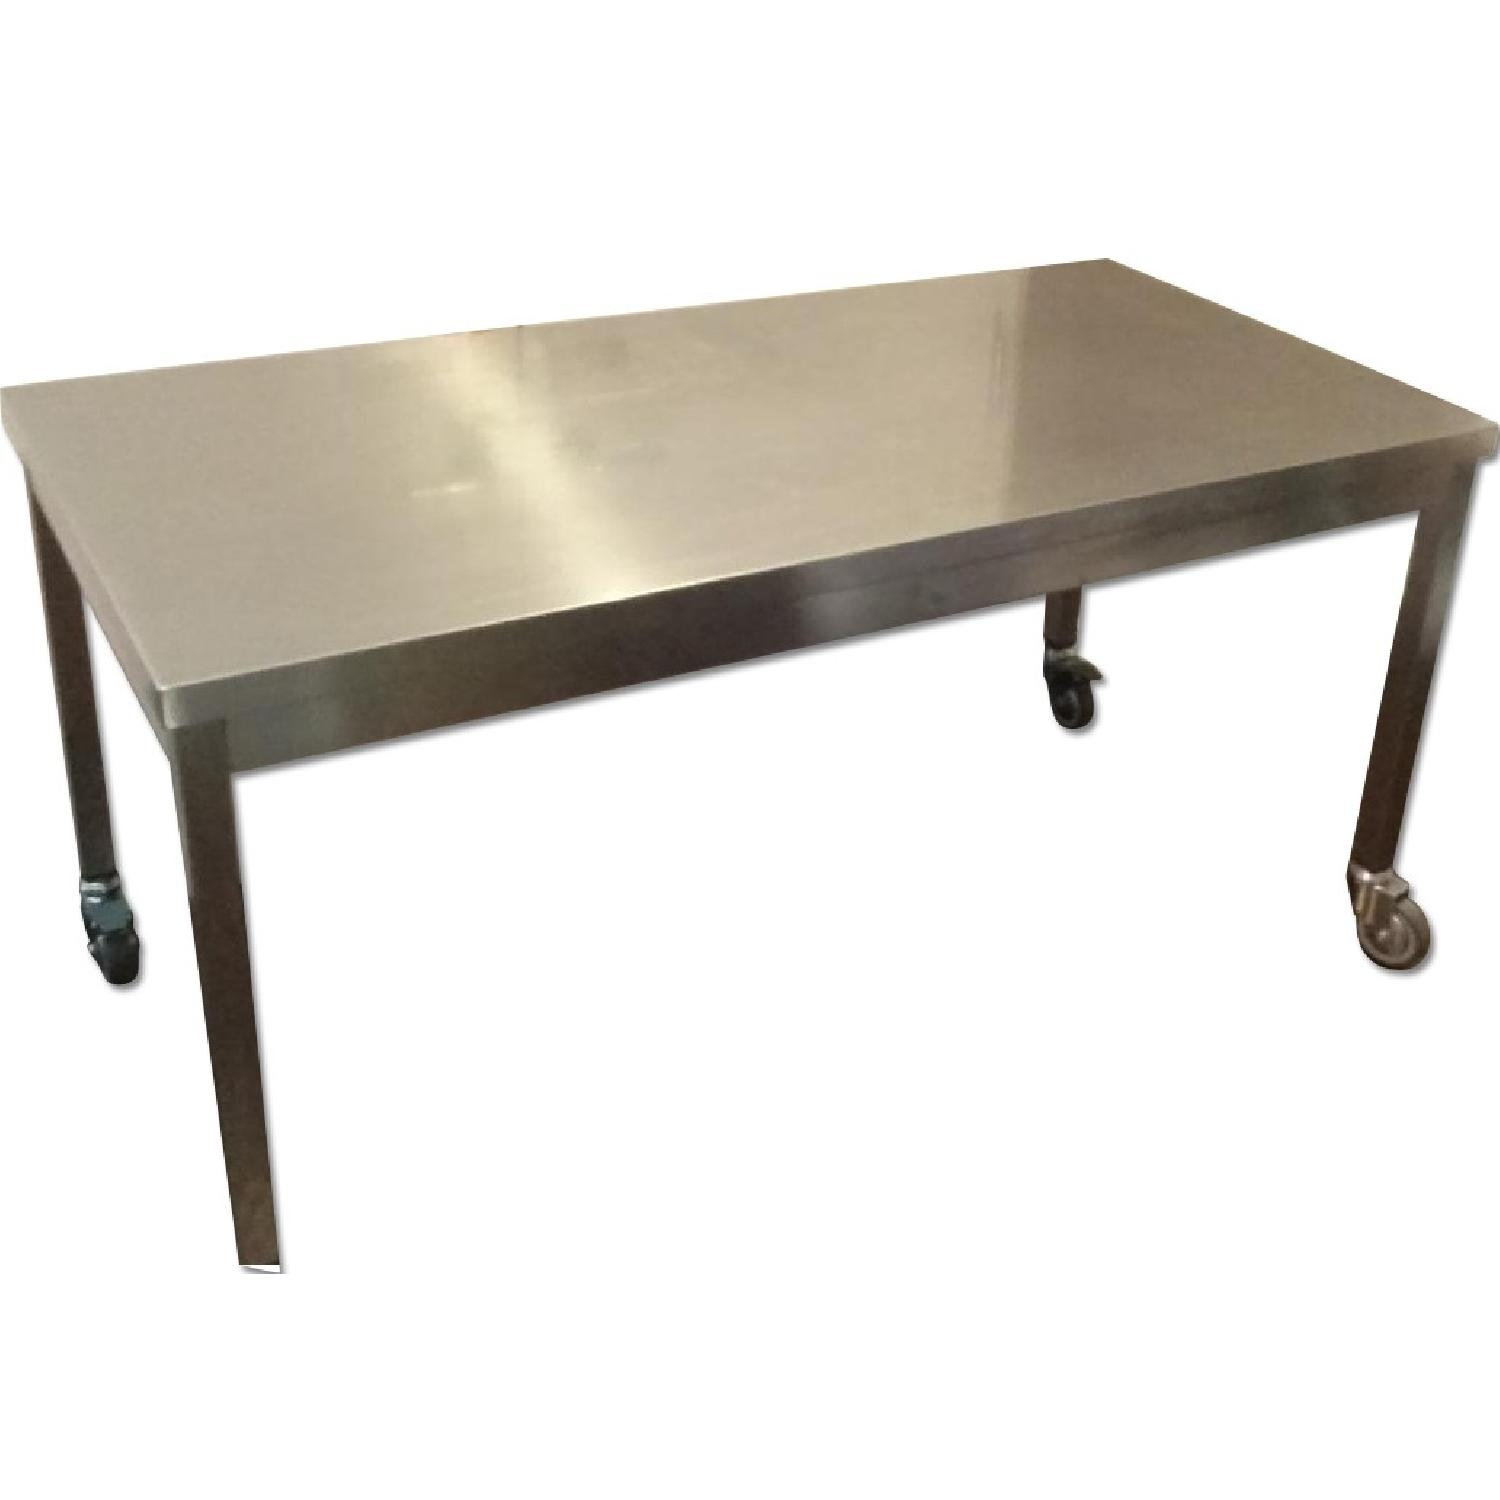 Design Within Reach Quovis Stainless Steel Table - image-0